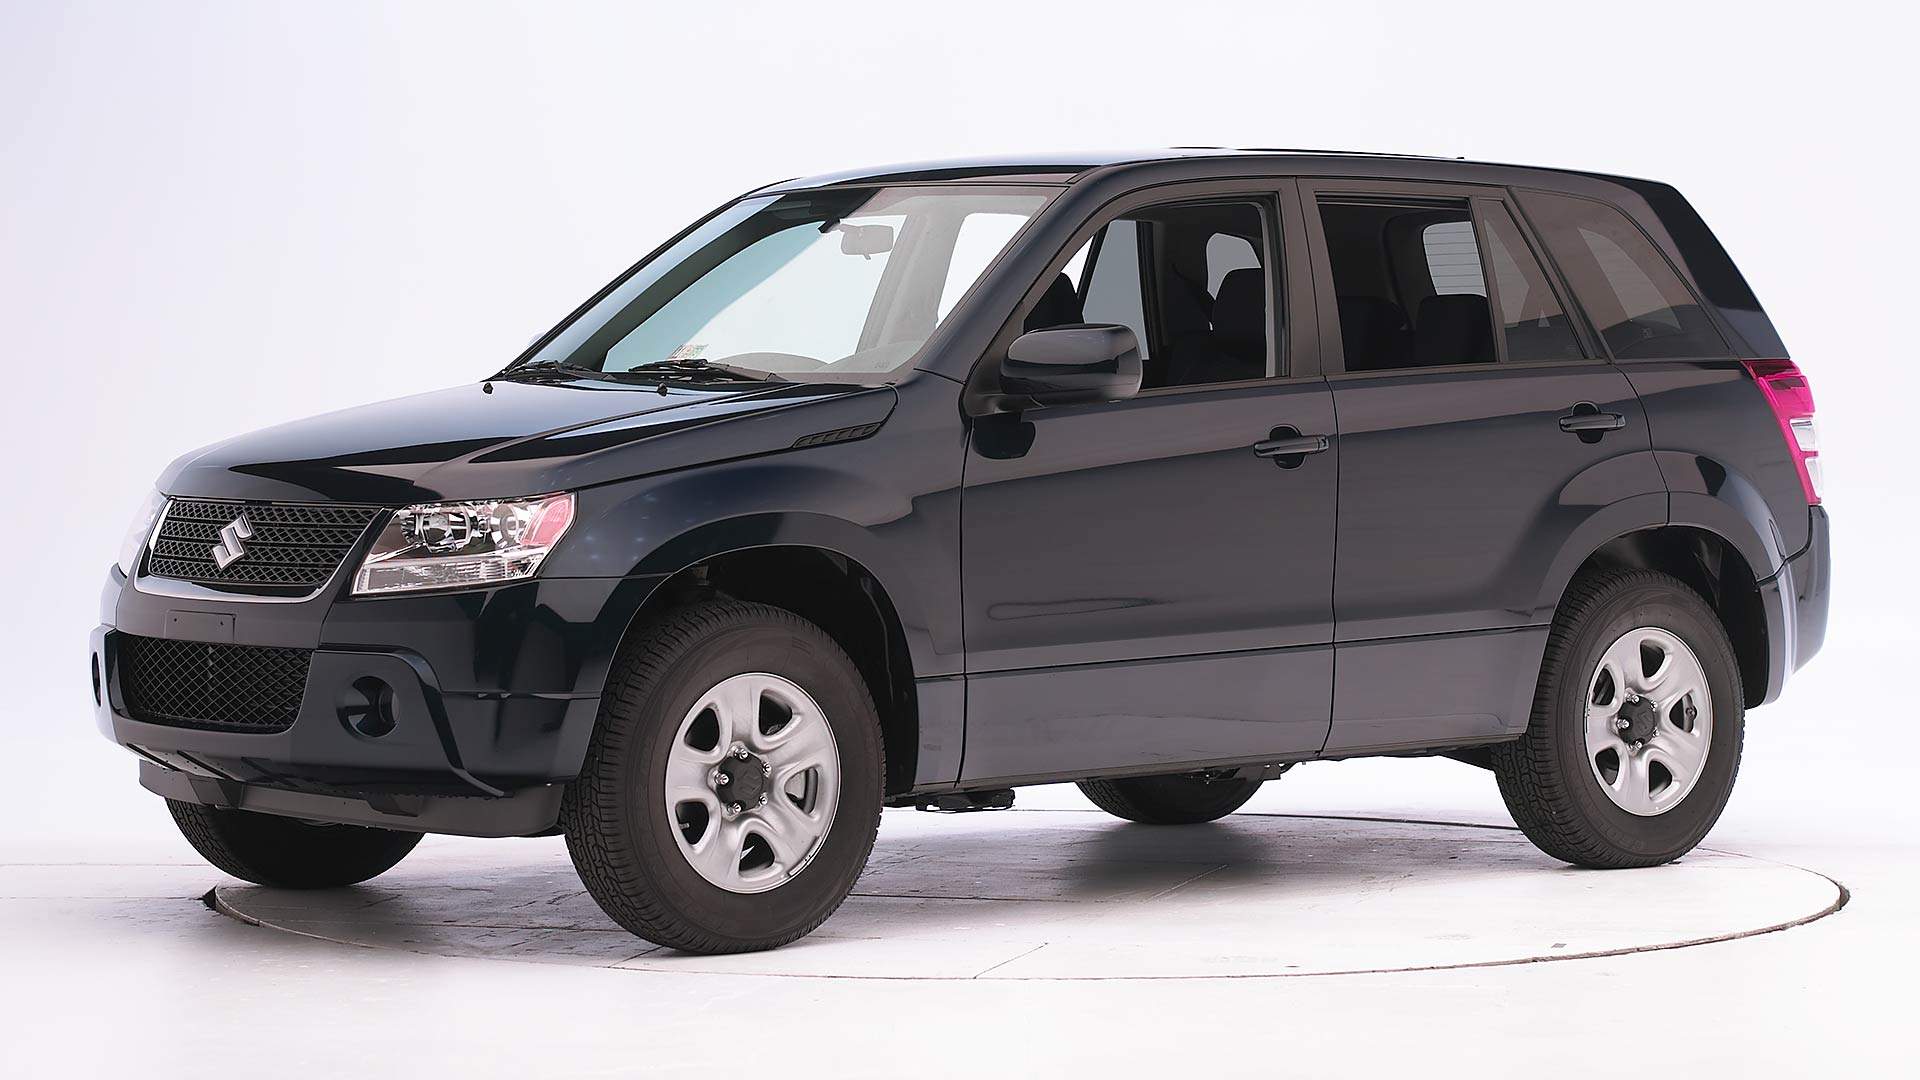 2009 Suzuki Grand Vitara 4-door SUV